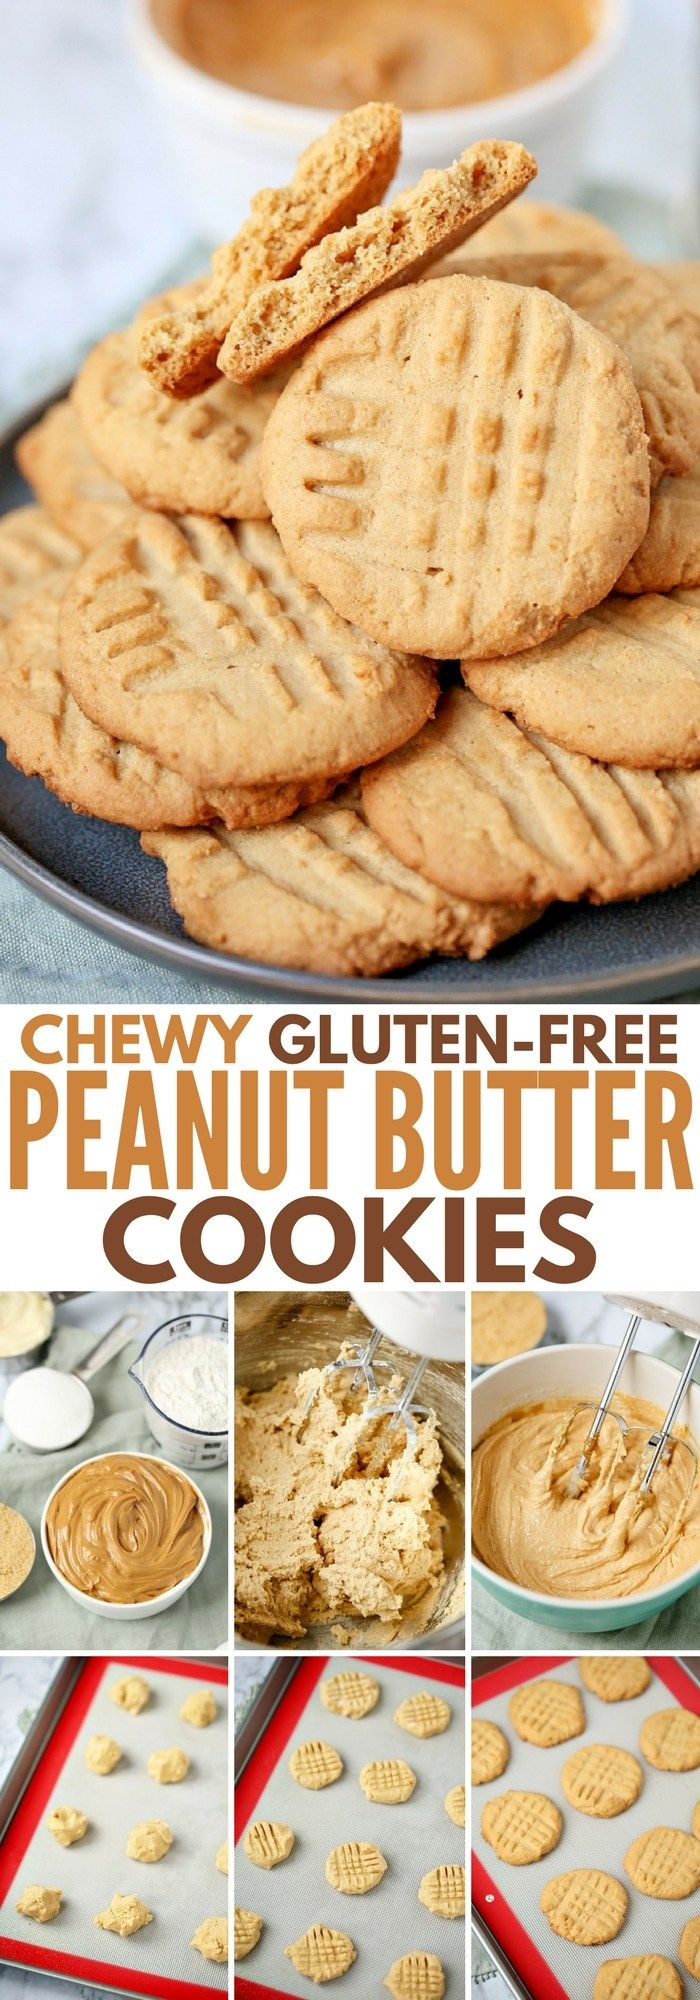 Chewy GlutenFree Peanut Butter Cookies  Id never guess this easy recipe is glutenfree